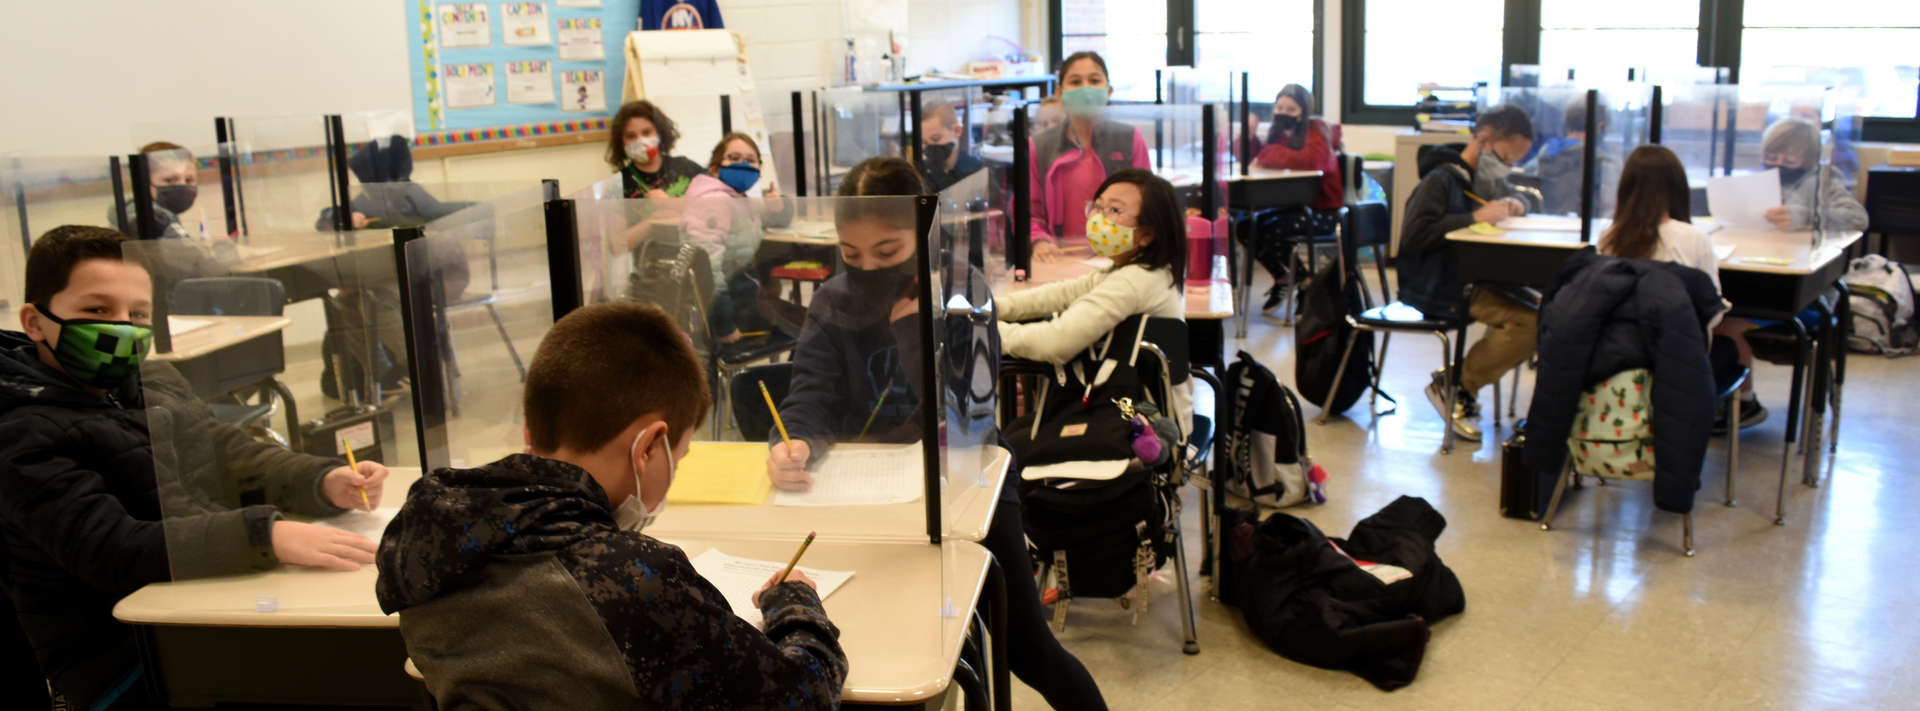 4th grade students wearing masks sitting at desks with barriers